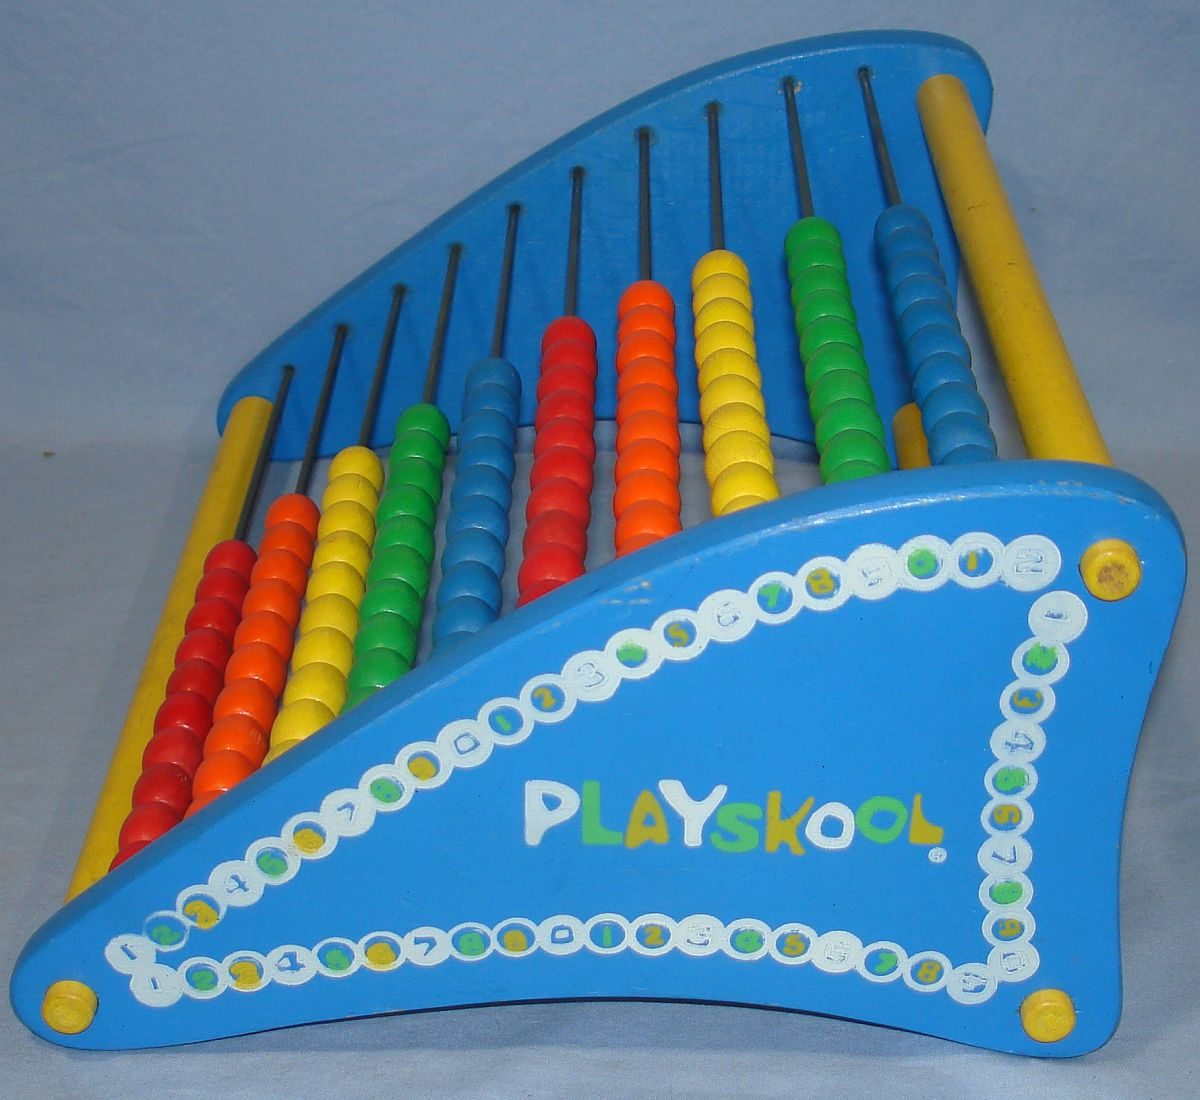 Vintage Playskool Abacus Counting Toy Red Orange Yellow Green Blue Sliding Wooden Beads Side Panel